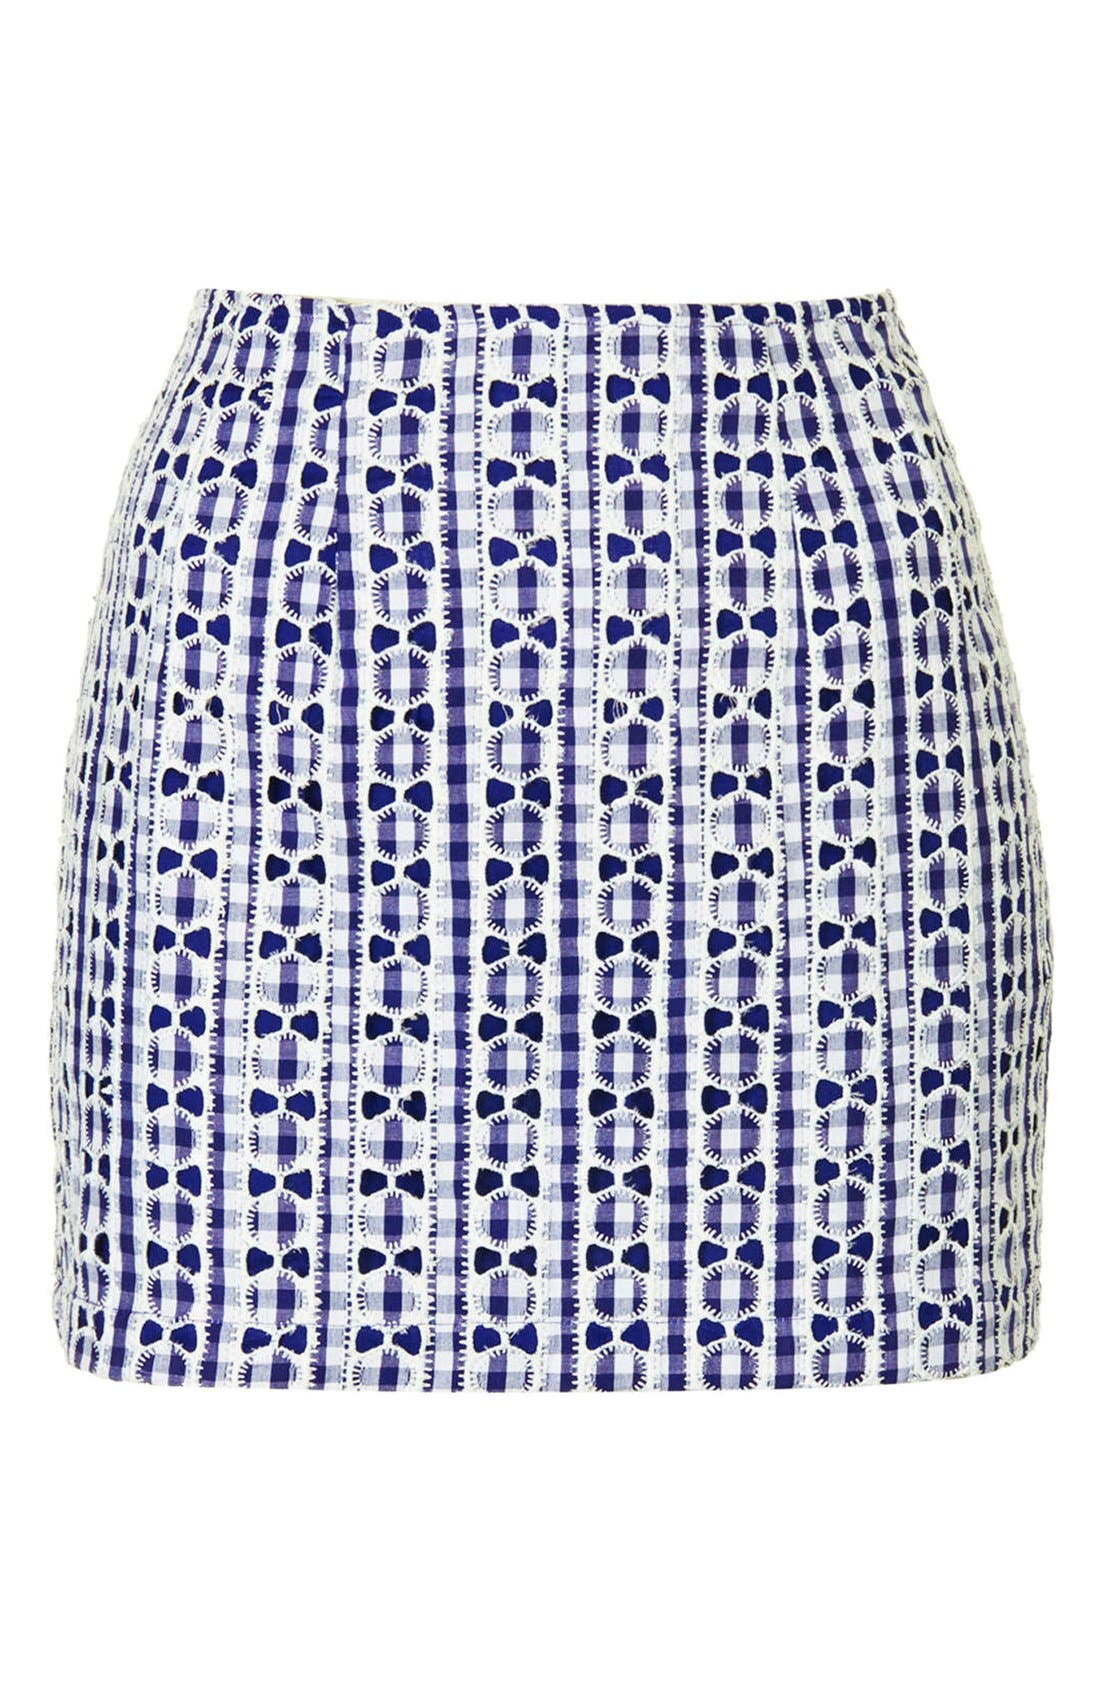 Alternate Image 3  - Topshop Lace Gingham Pelmet Skirt (Regular & Petite)